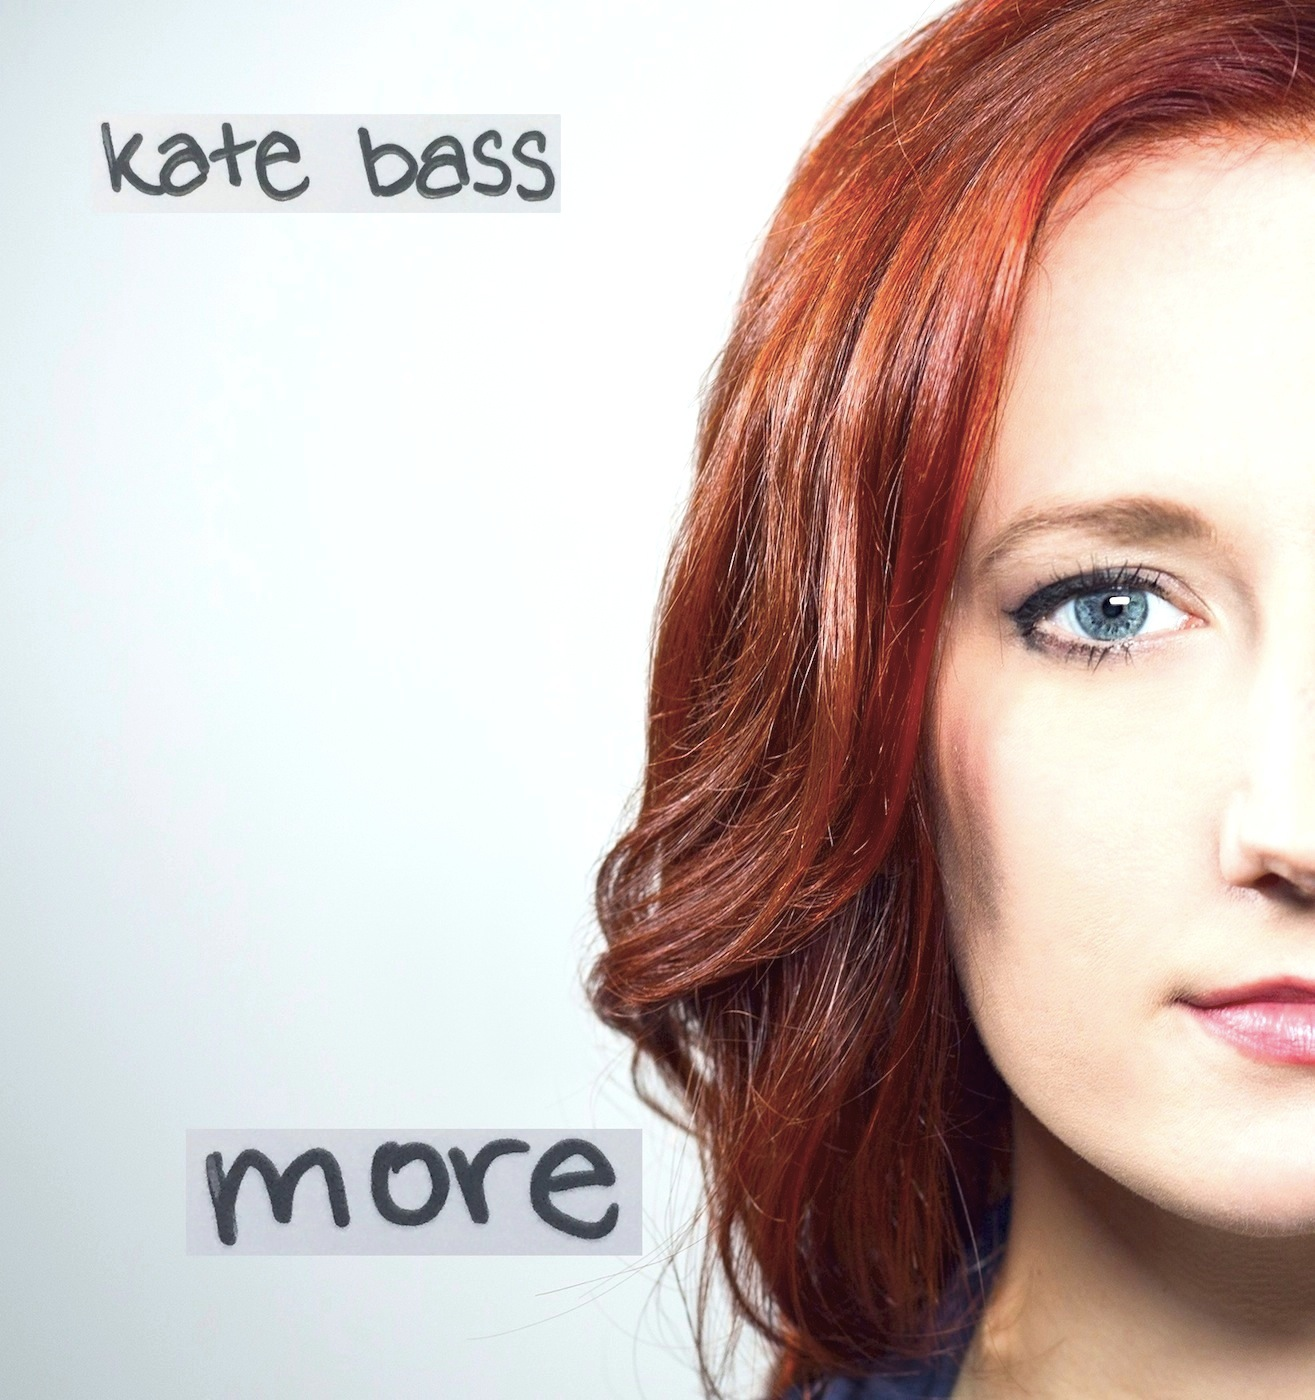 more - Click the album cover to stream and purchase Kate's EP, More